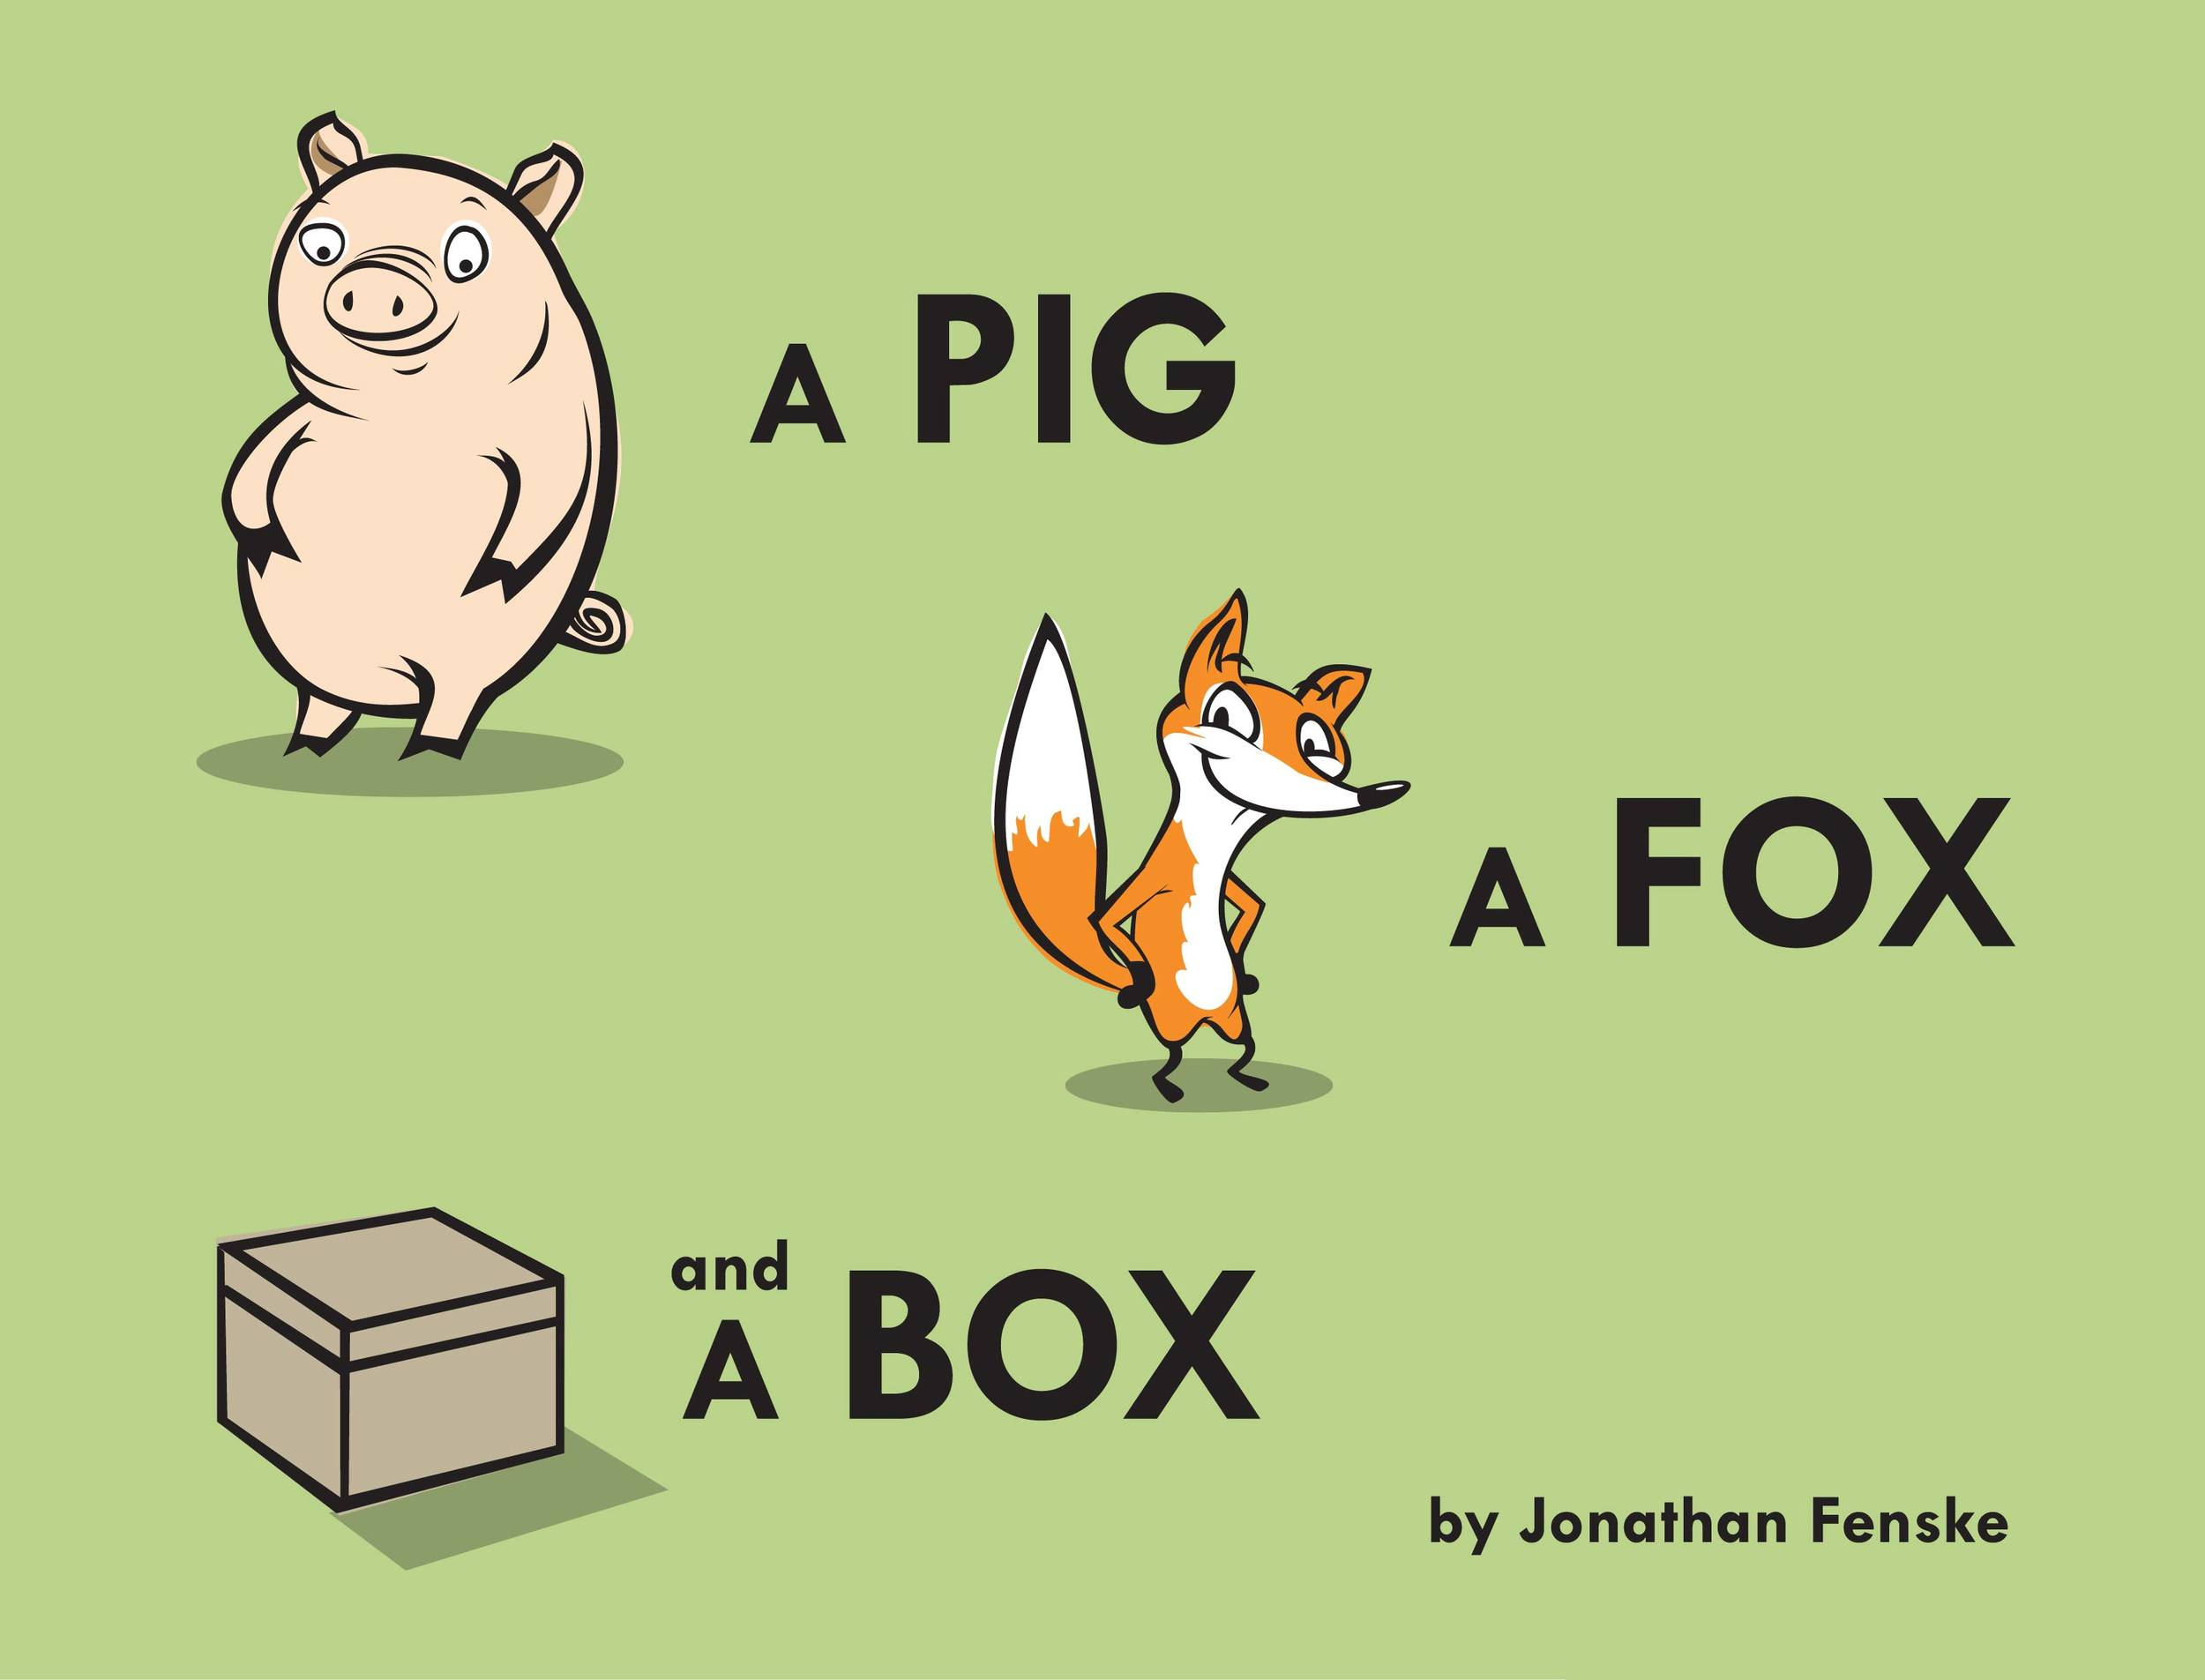 The cover of the children's book A Pig A Fox and A Box by Jonathan Fenske